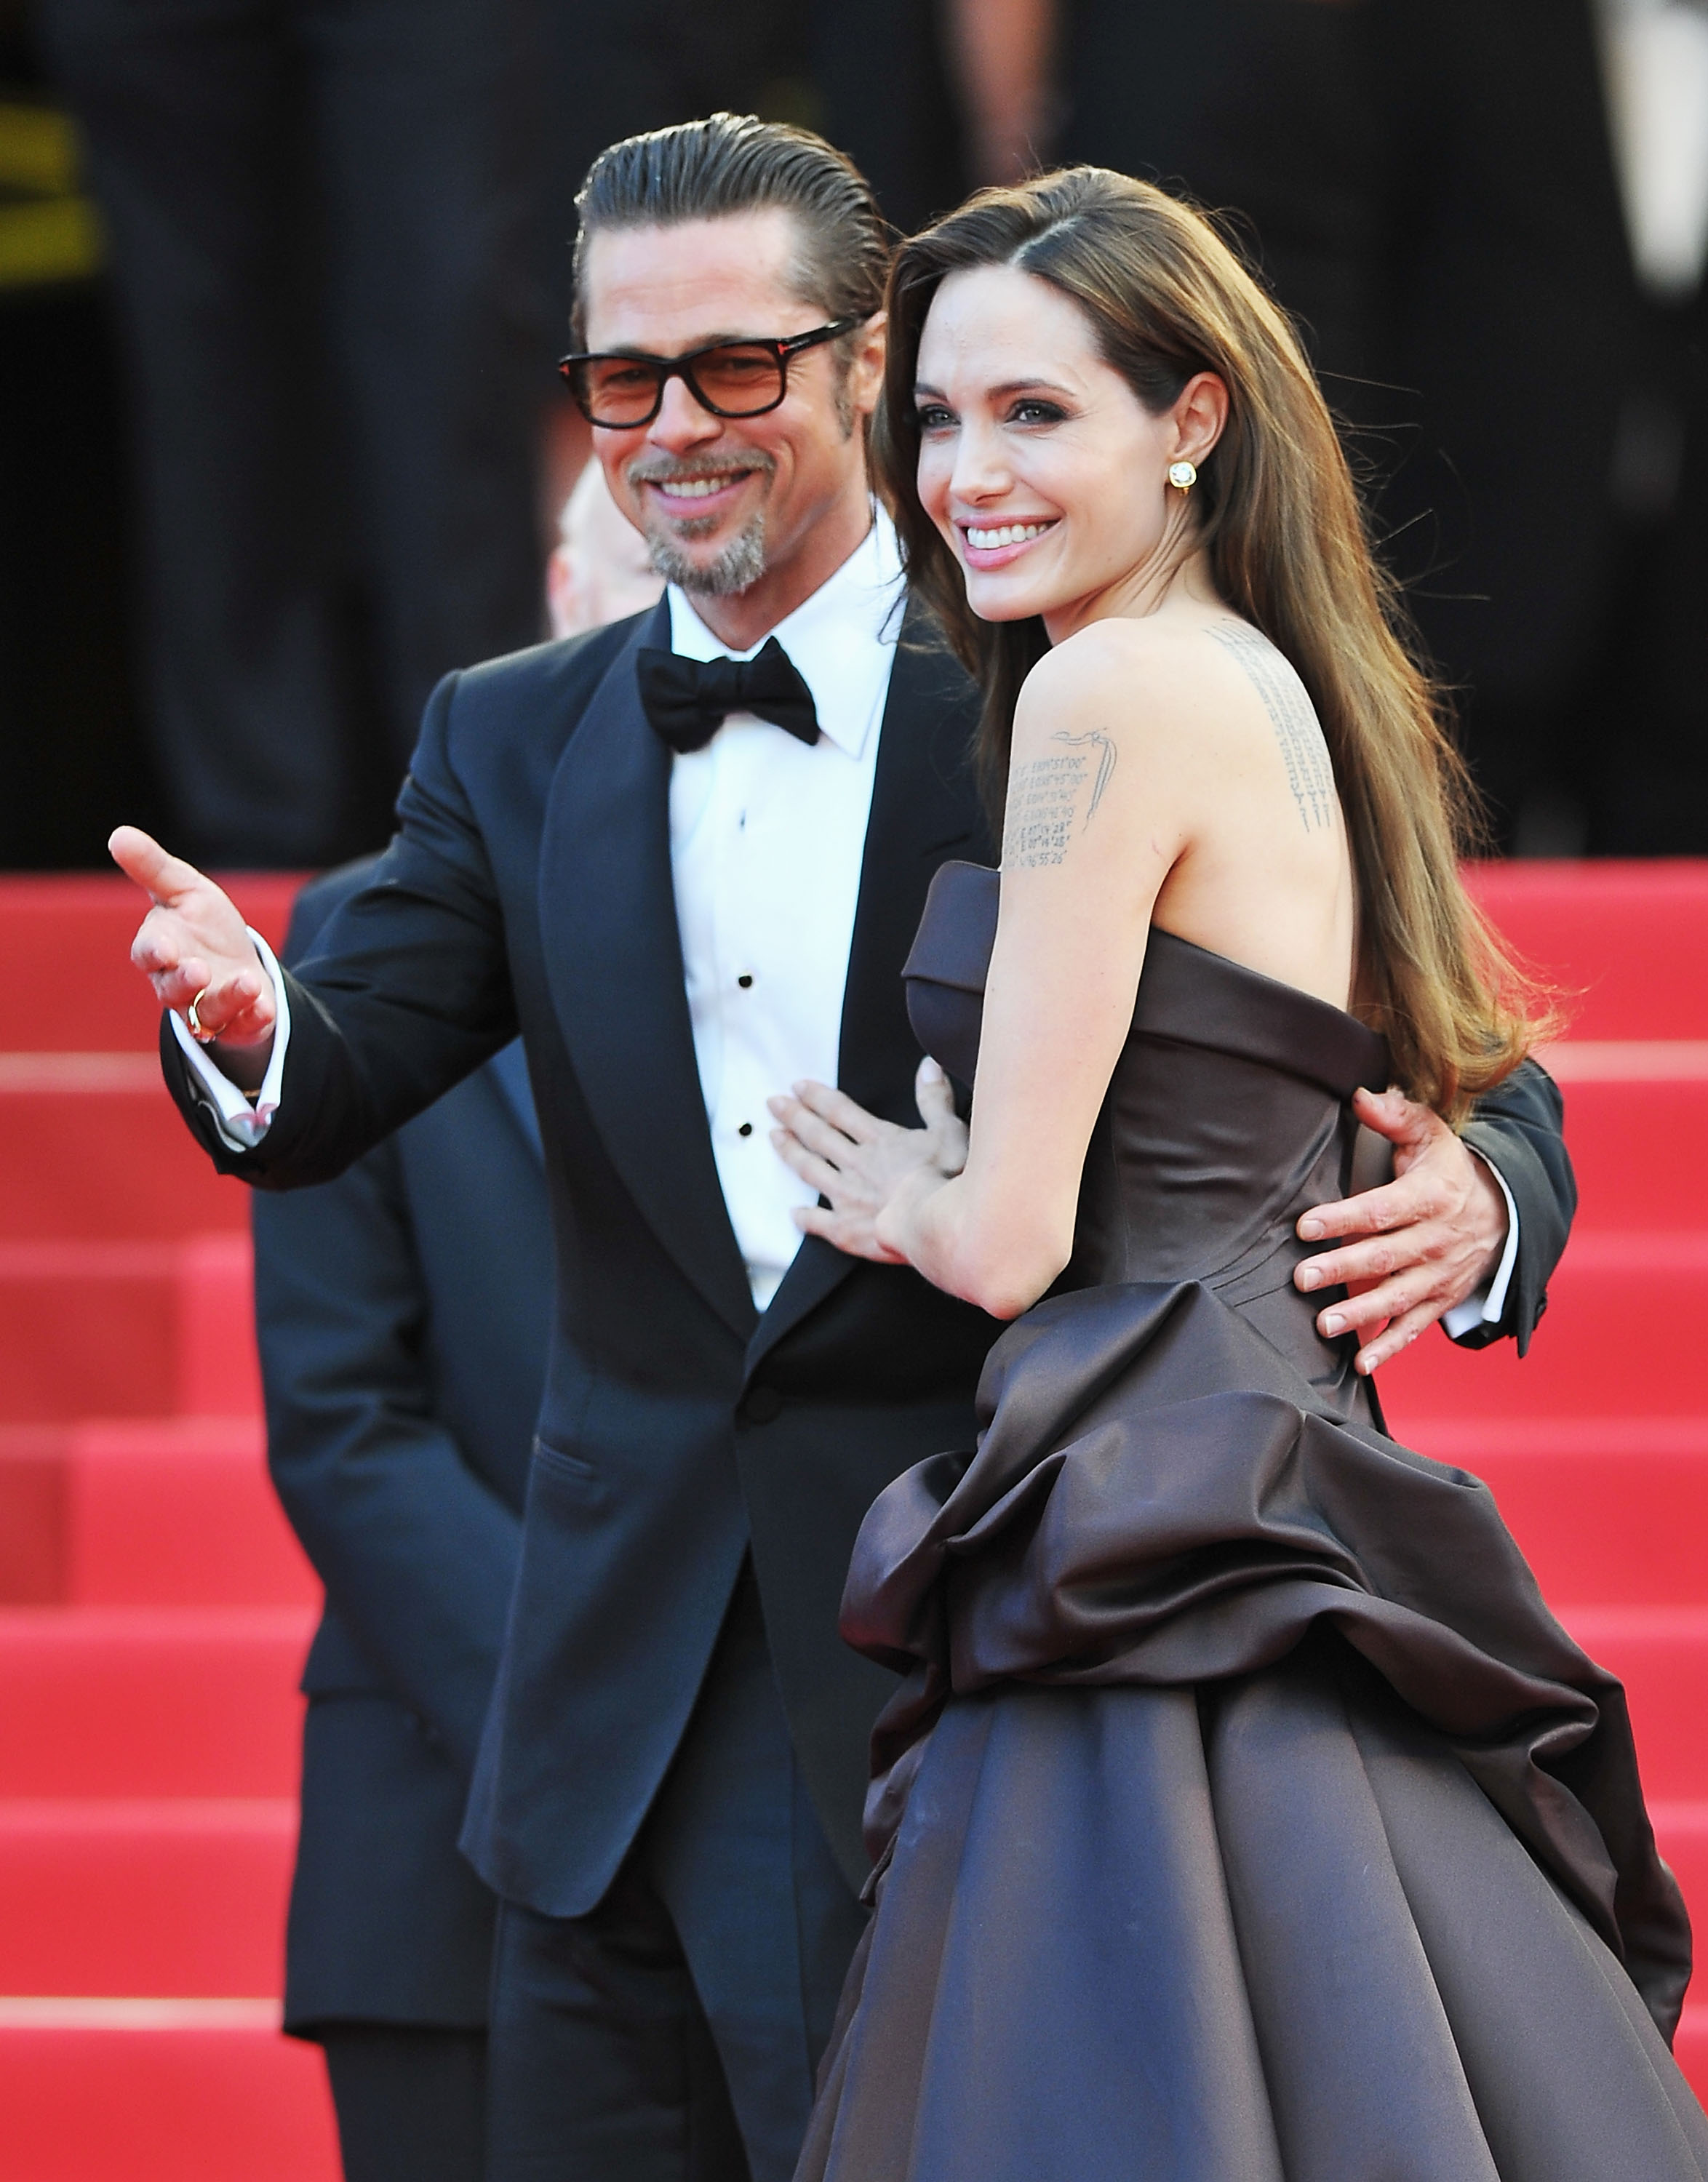 """CANNES, FRANCE - MAY 16: Angelina Jolie (R) and Brad Pitt attend """"The Tree Of Life"""" premiere during the 64th Annual Cannes Film Festival at Palais des Festivals on May 16, 2011 in Cannes, France. (Photo by Pascal Le Segretain/Getty Images)"""